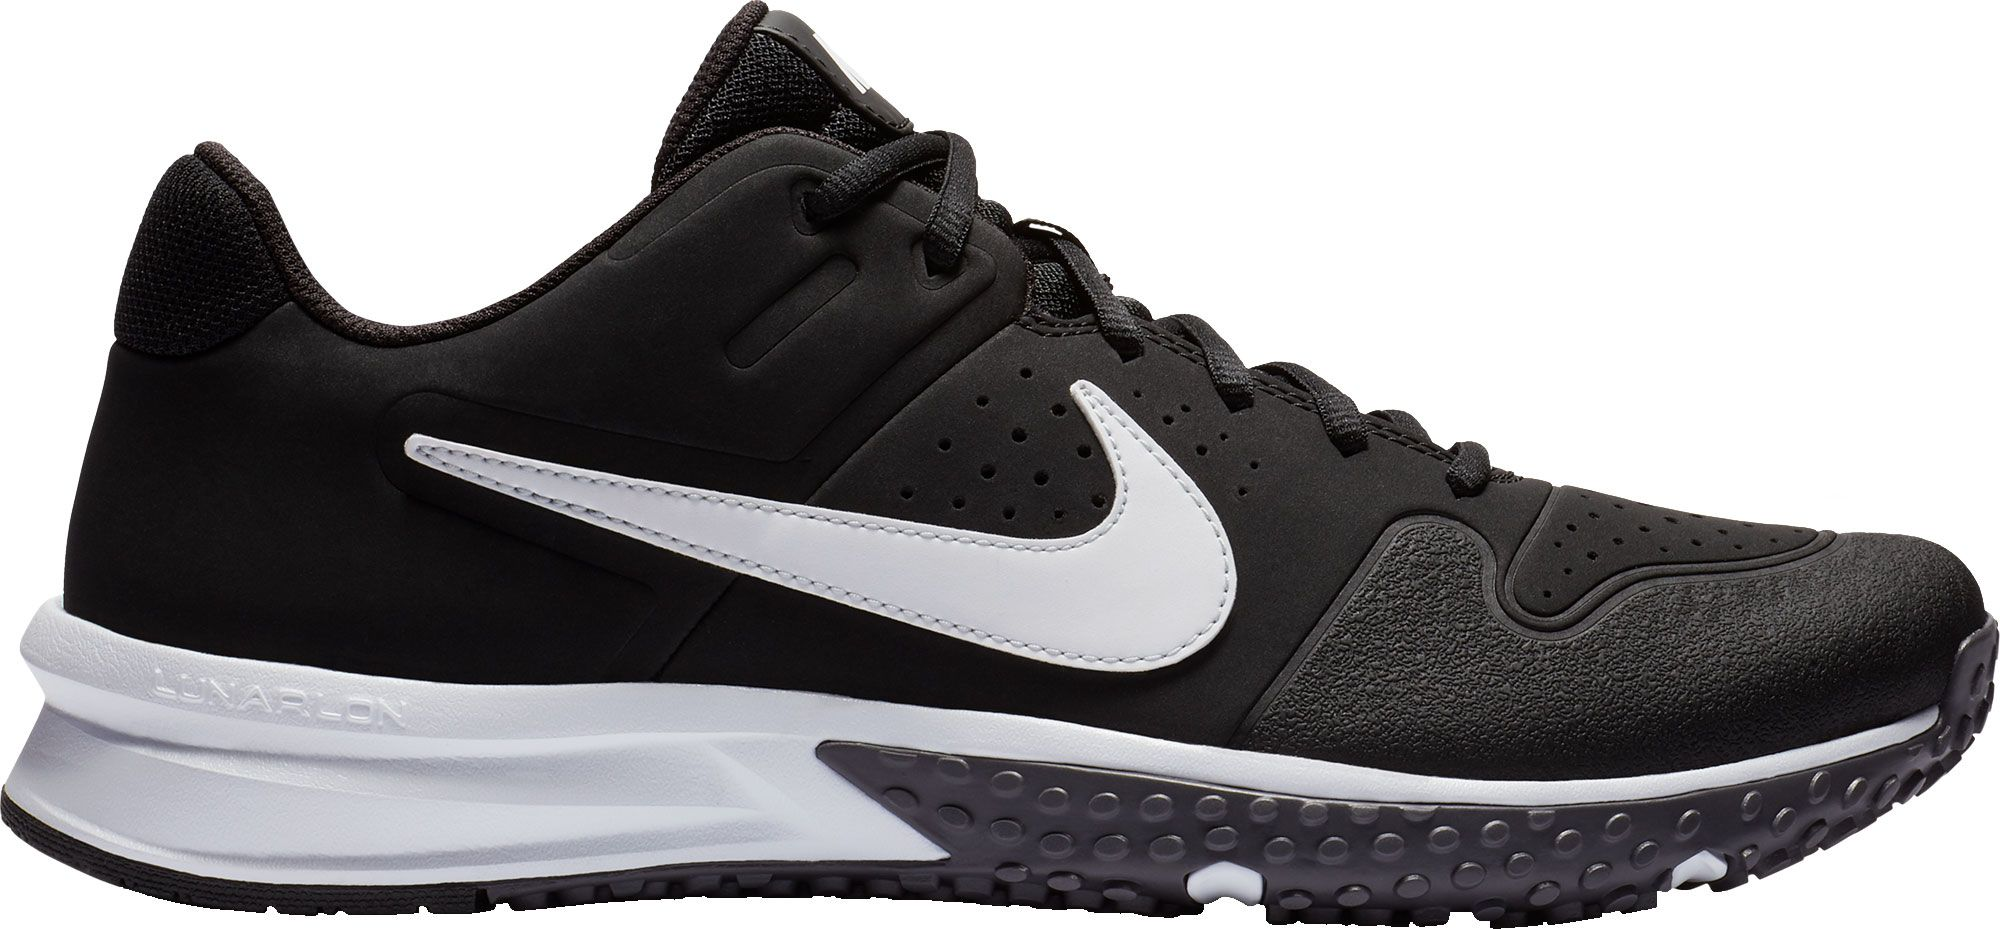 youth nike turf shoes